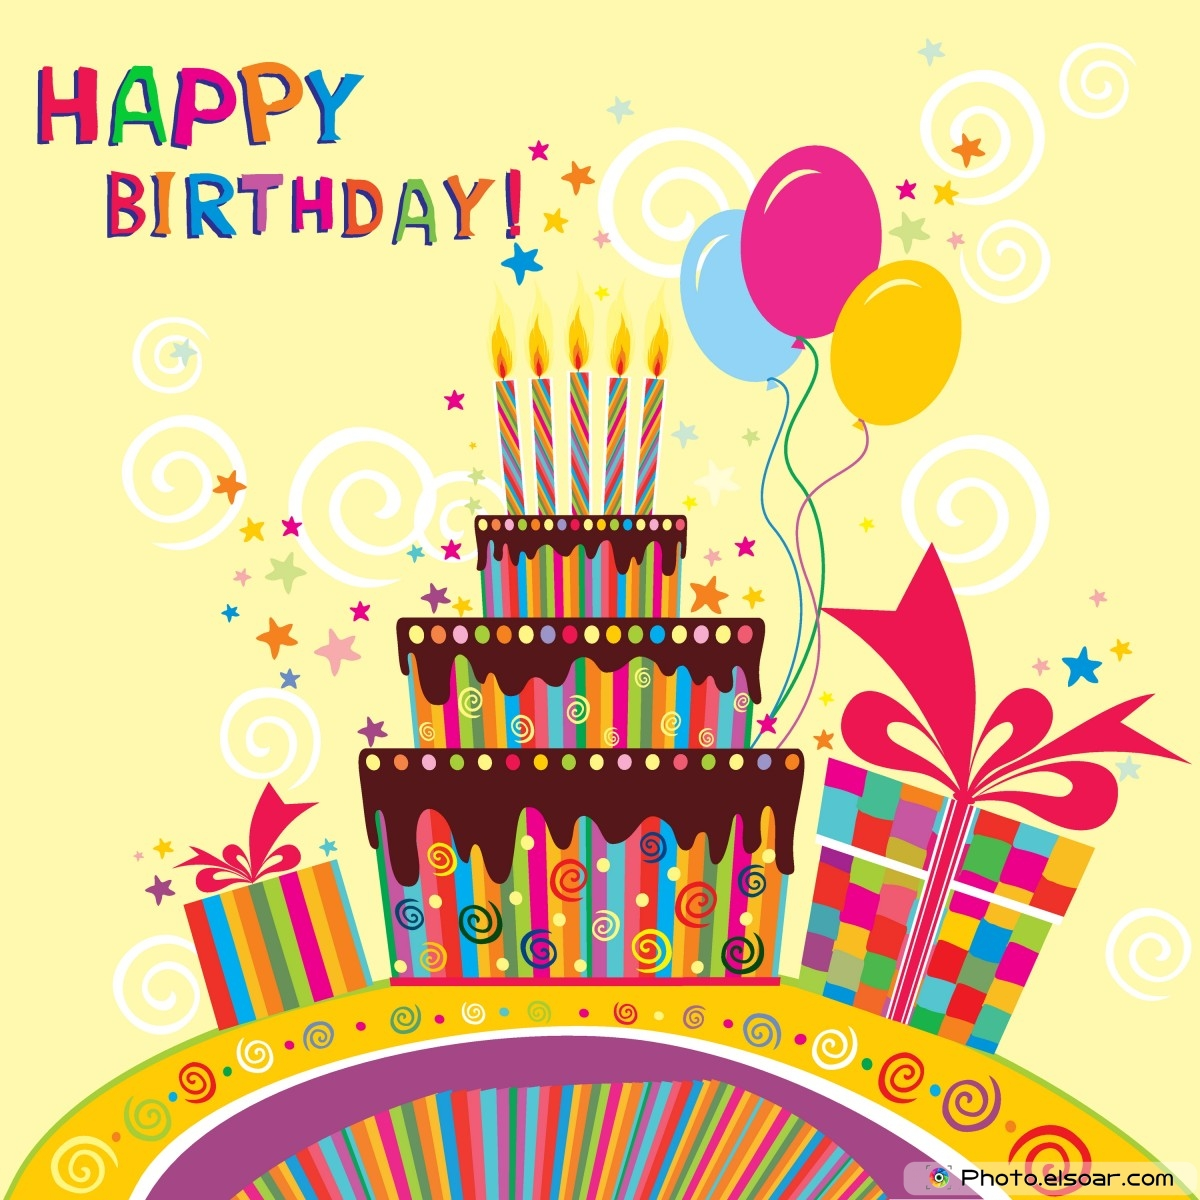 birthday cards Elsoar – Happy Birthday Cards Free Download